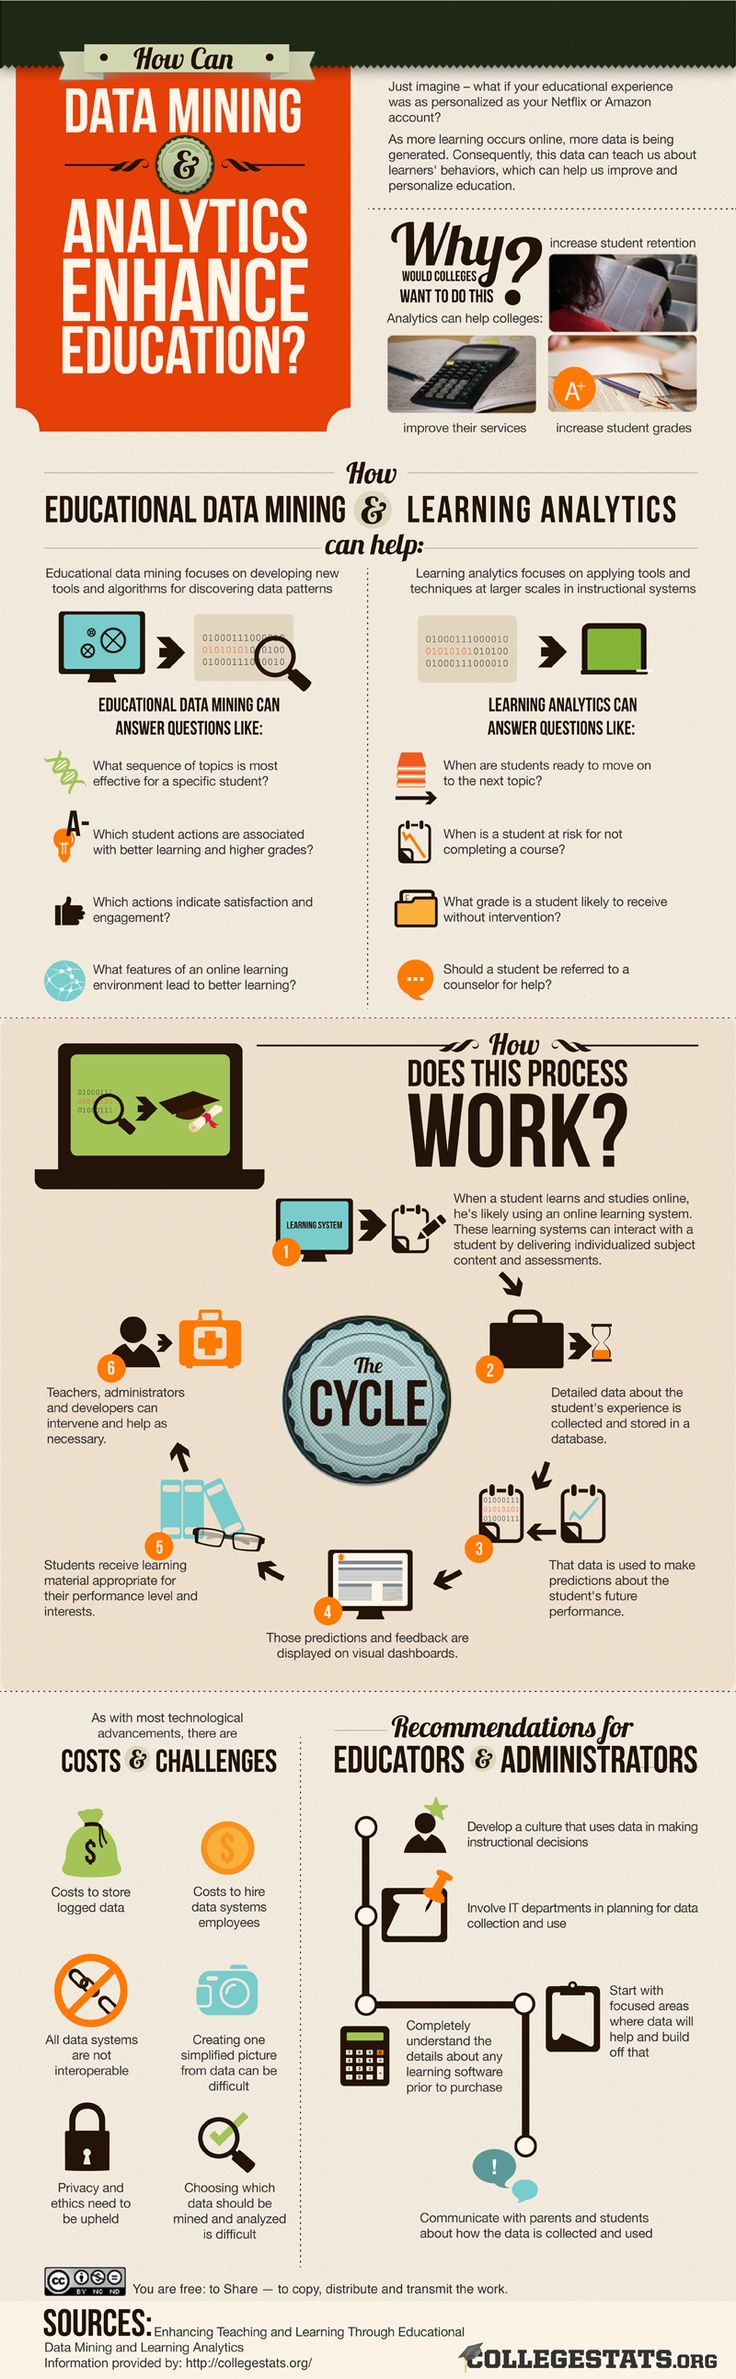 How Can Data Mining and Analytics Enhance Education? - Infographic